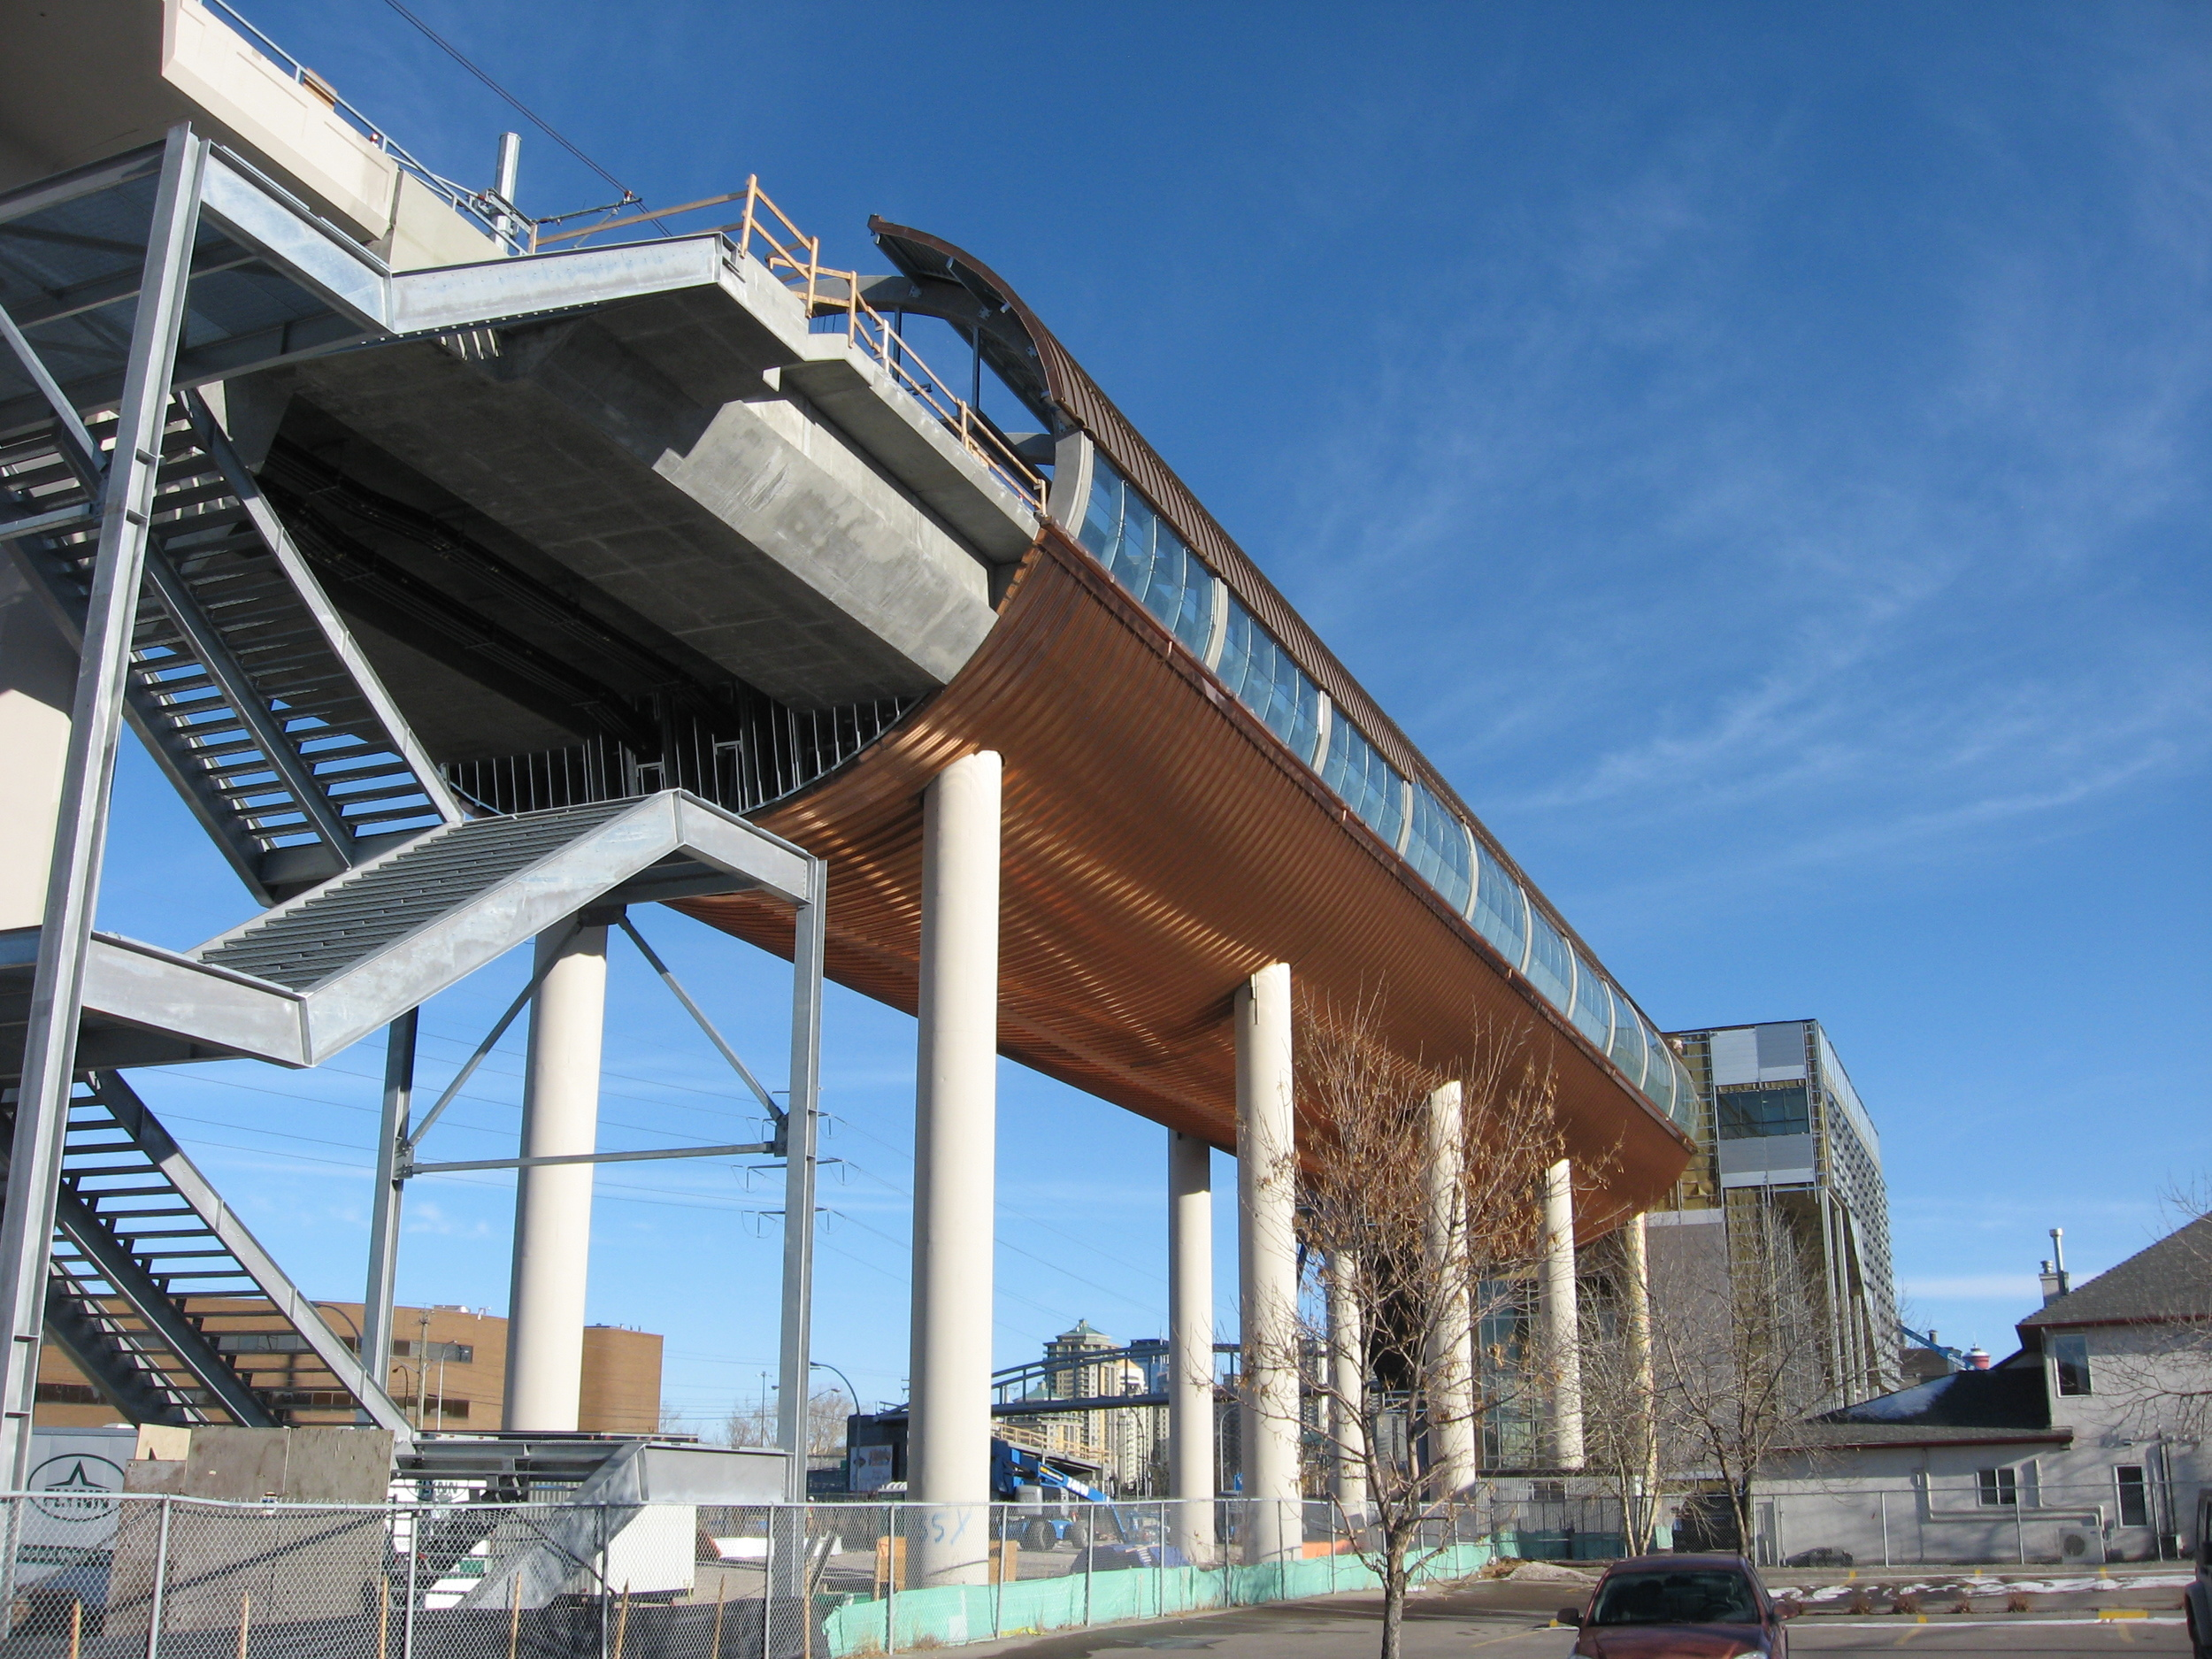 The new West LRT transit station in Sunalta.